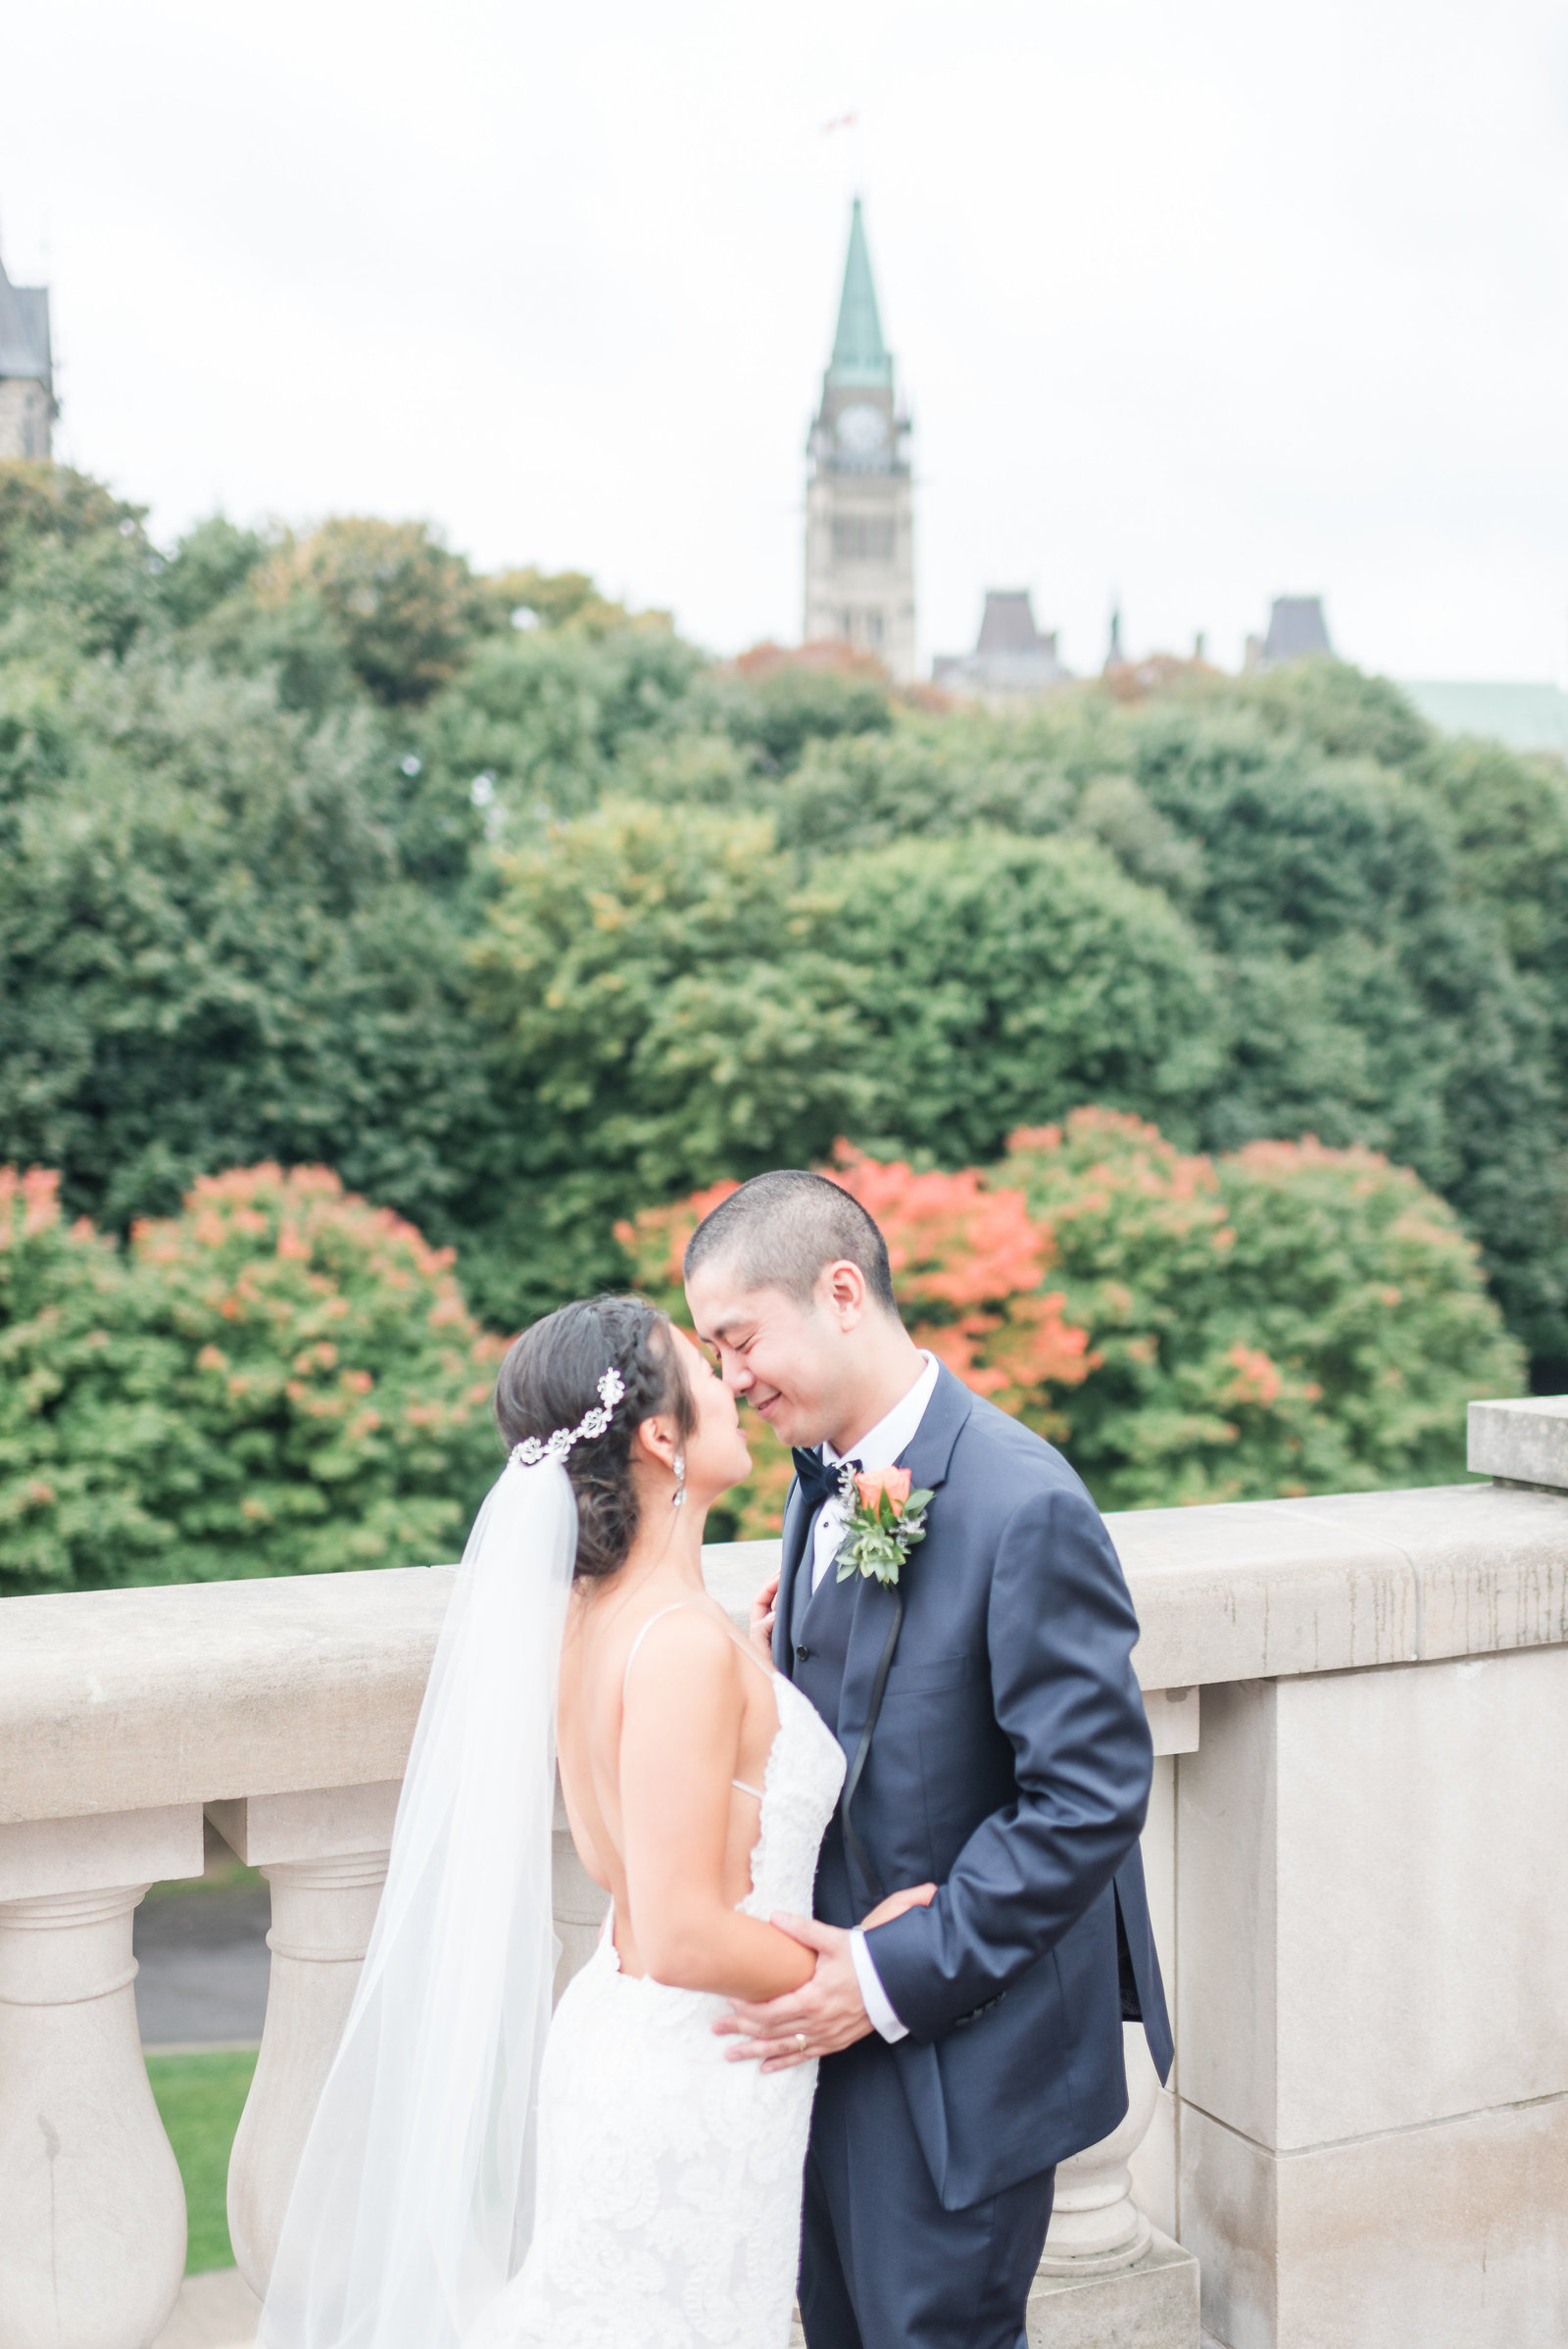 Tracy-Minh-Wedding-162700